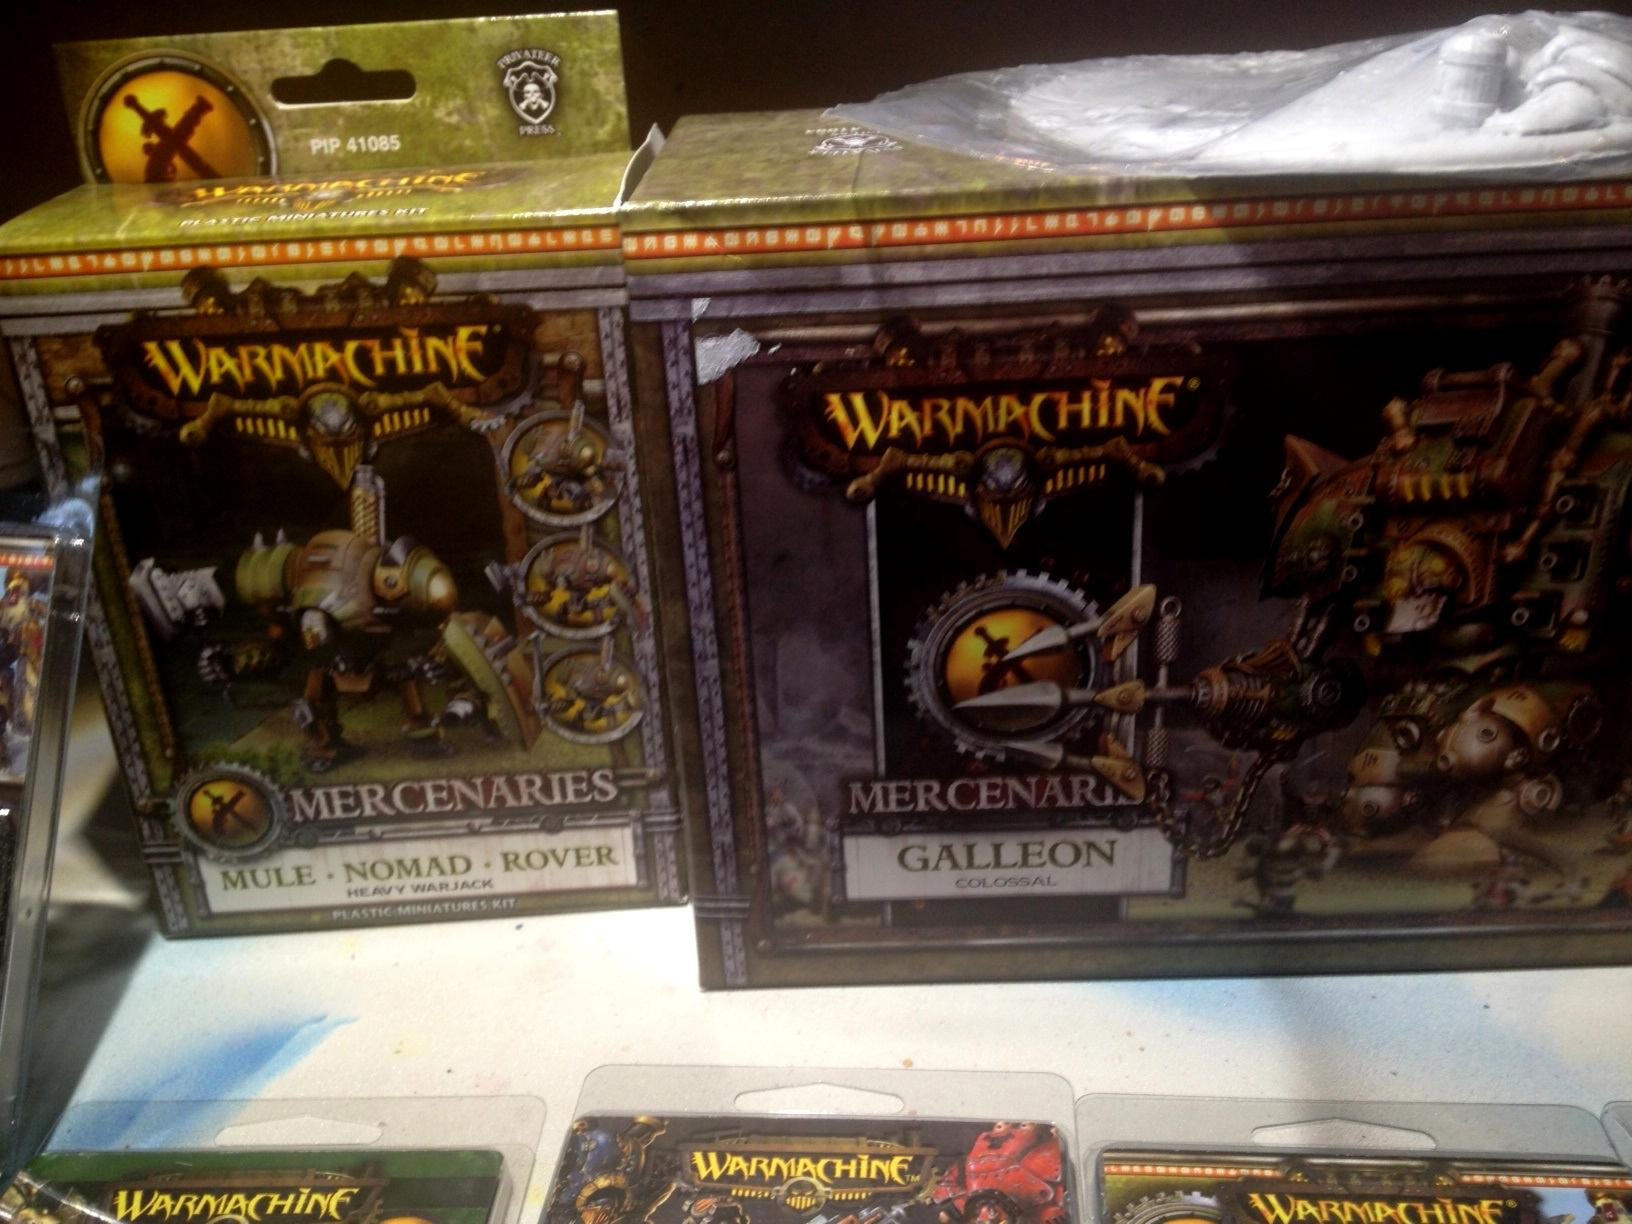 Mercenary, Privateer Press